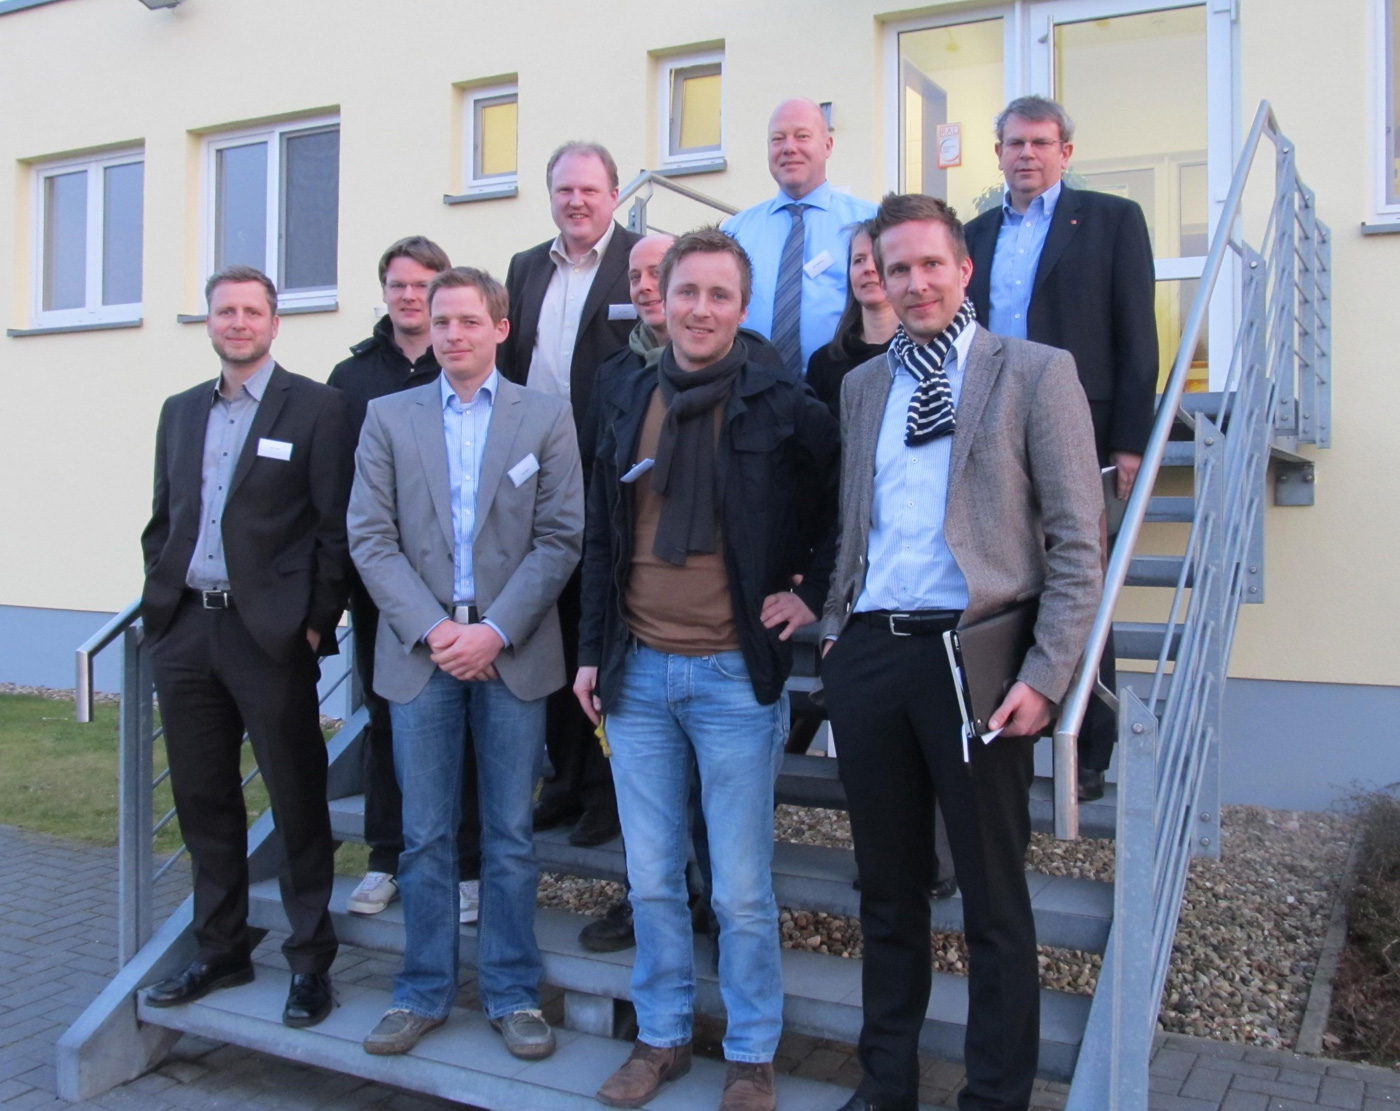 EKS - Catering Facility Service Consulting   Dialogveranstaltung ...